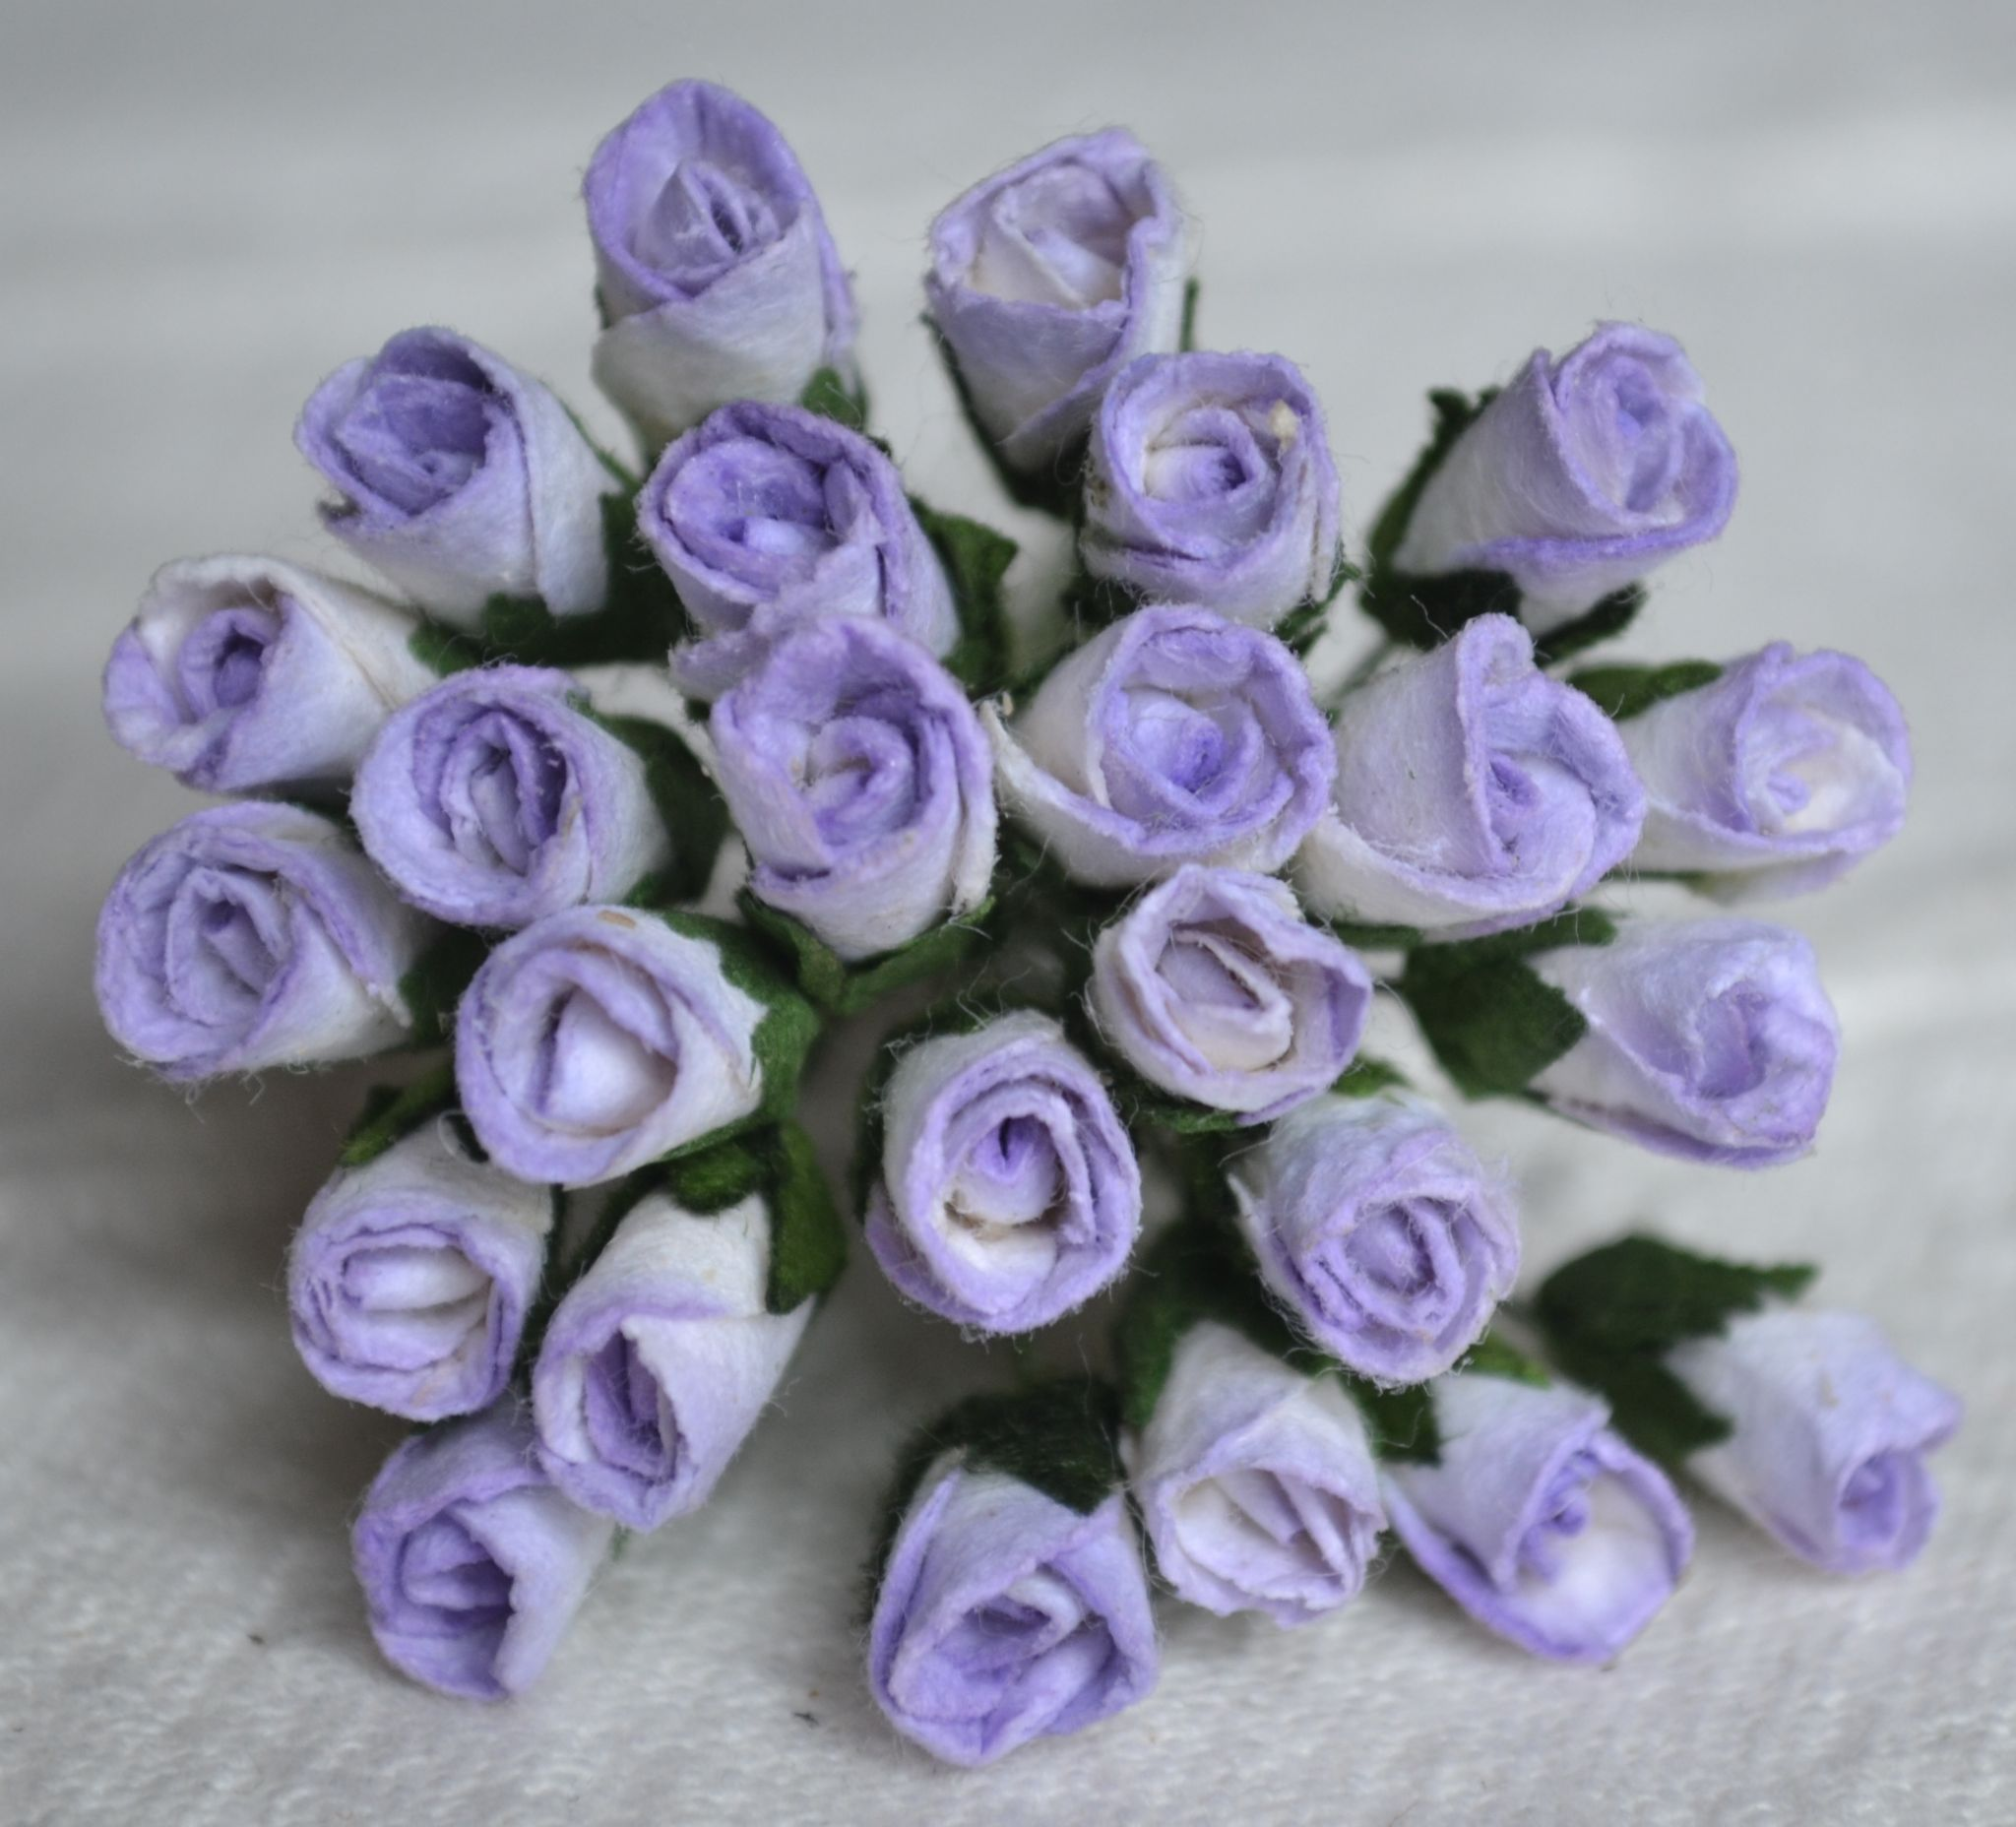 6mm Light Lilac Rose Buds L Mulberry Paper Flowers